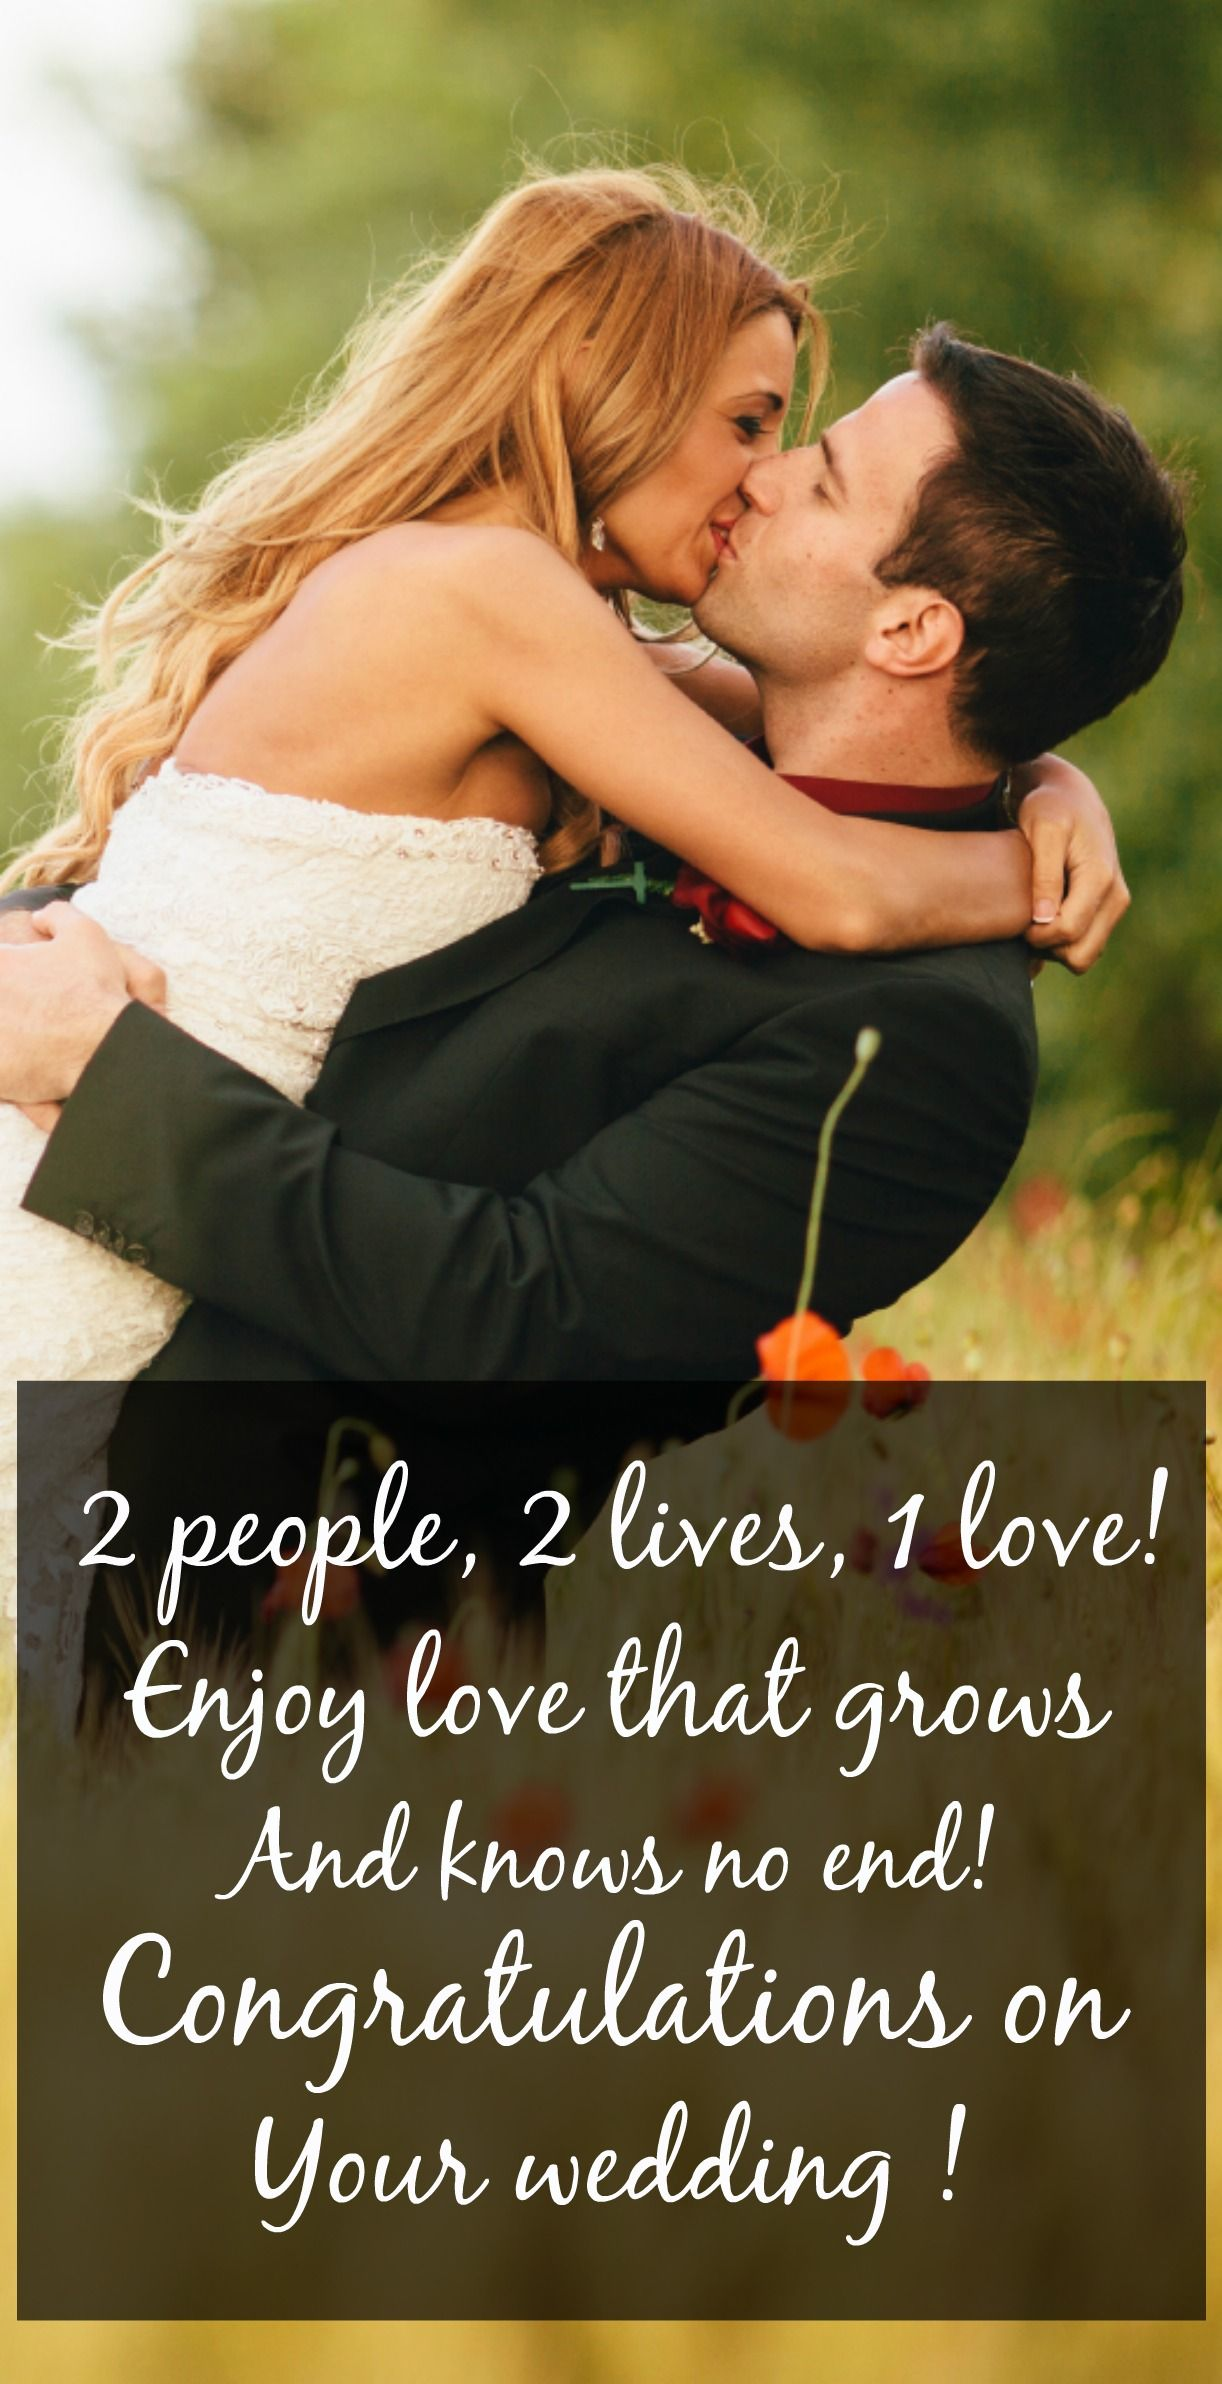 Marriage Wishes Top148 Beautiful Messages To Share Your